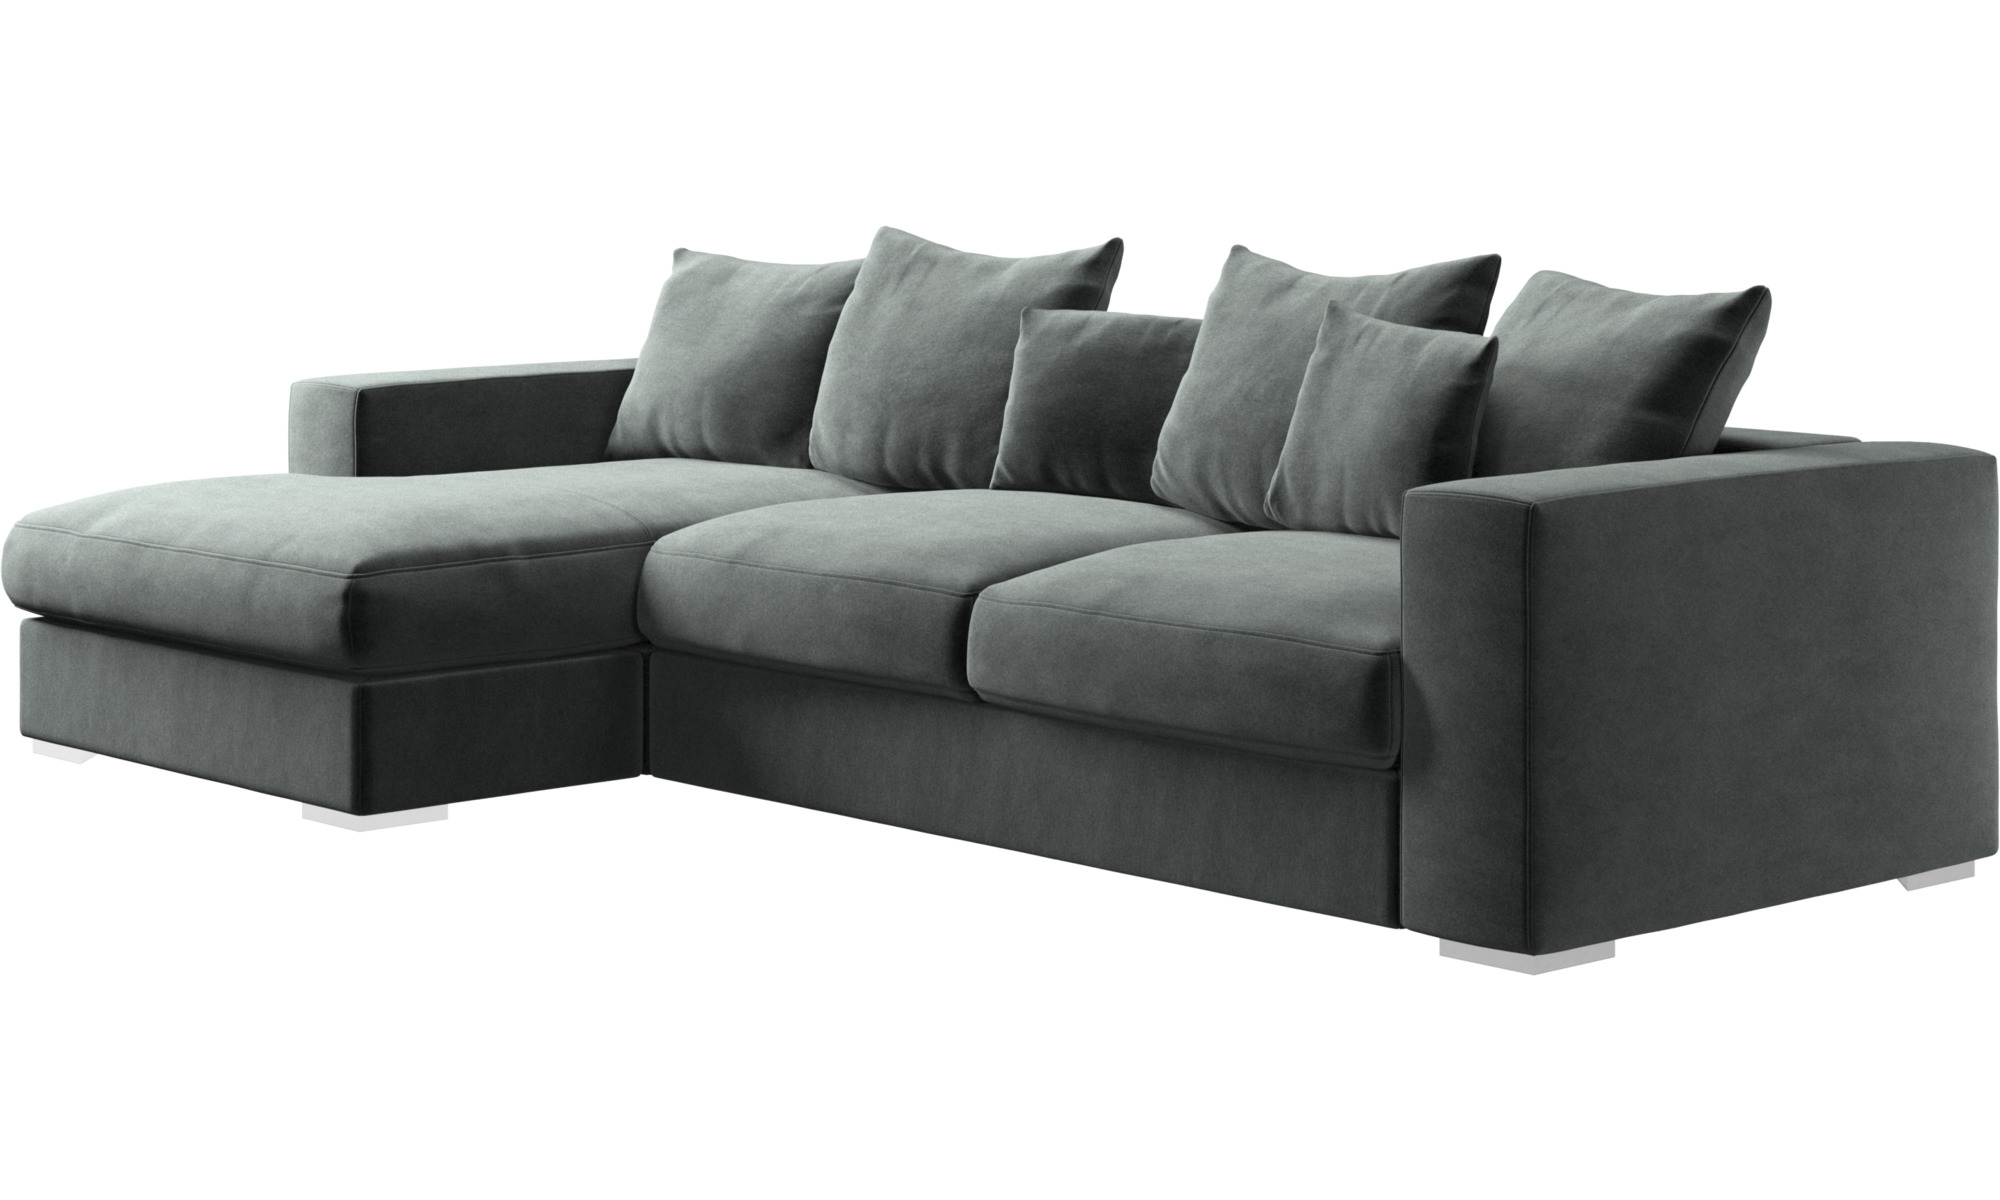 Chaise lounge sofas Cenova sofa with resting unit BoConcept